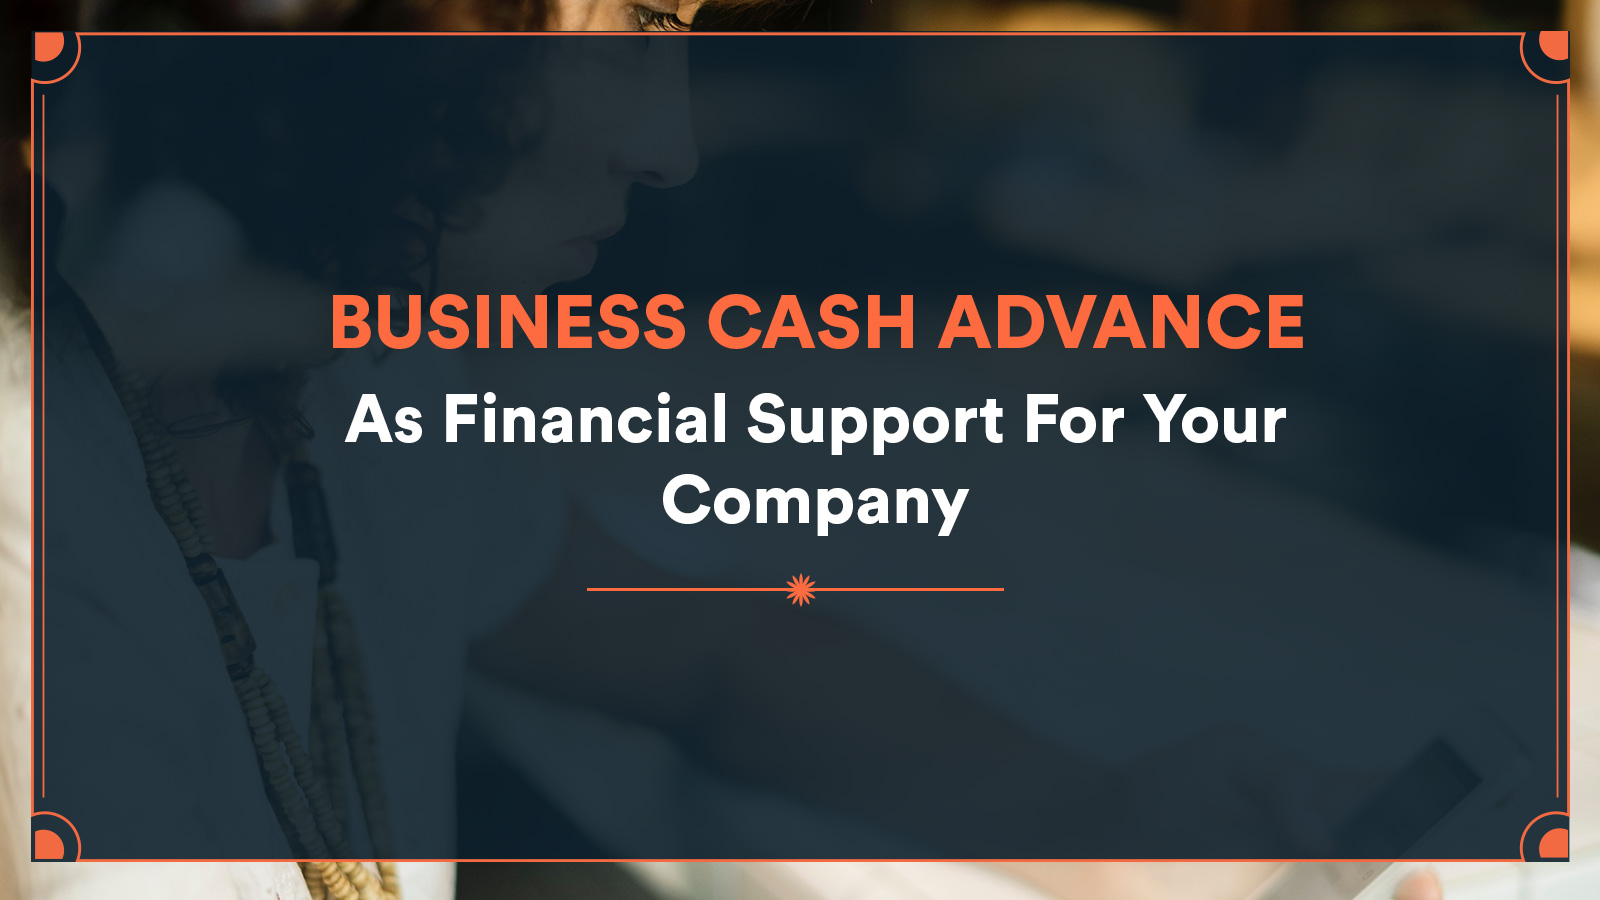 Business Cash Advance As Financial Support For Your Company